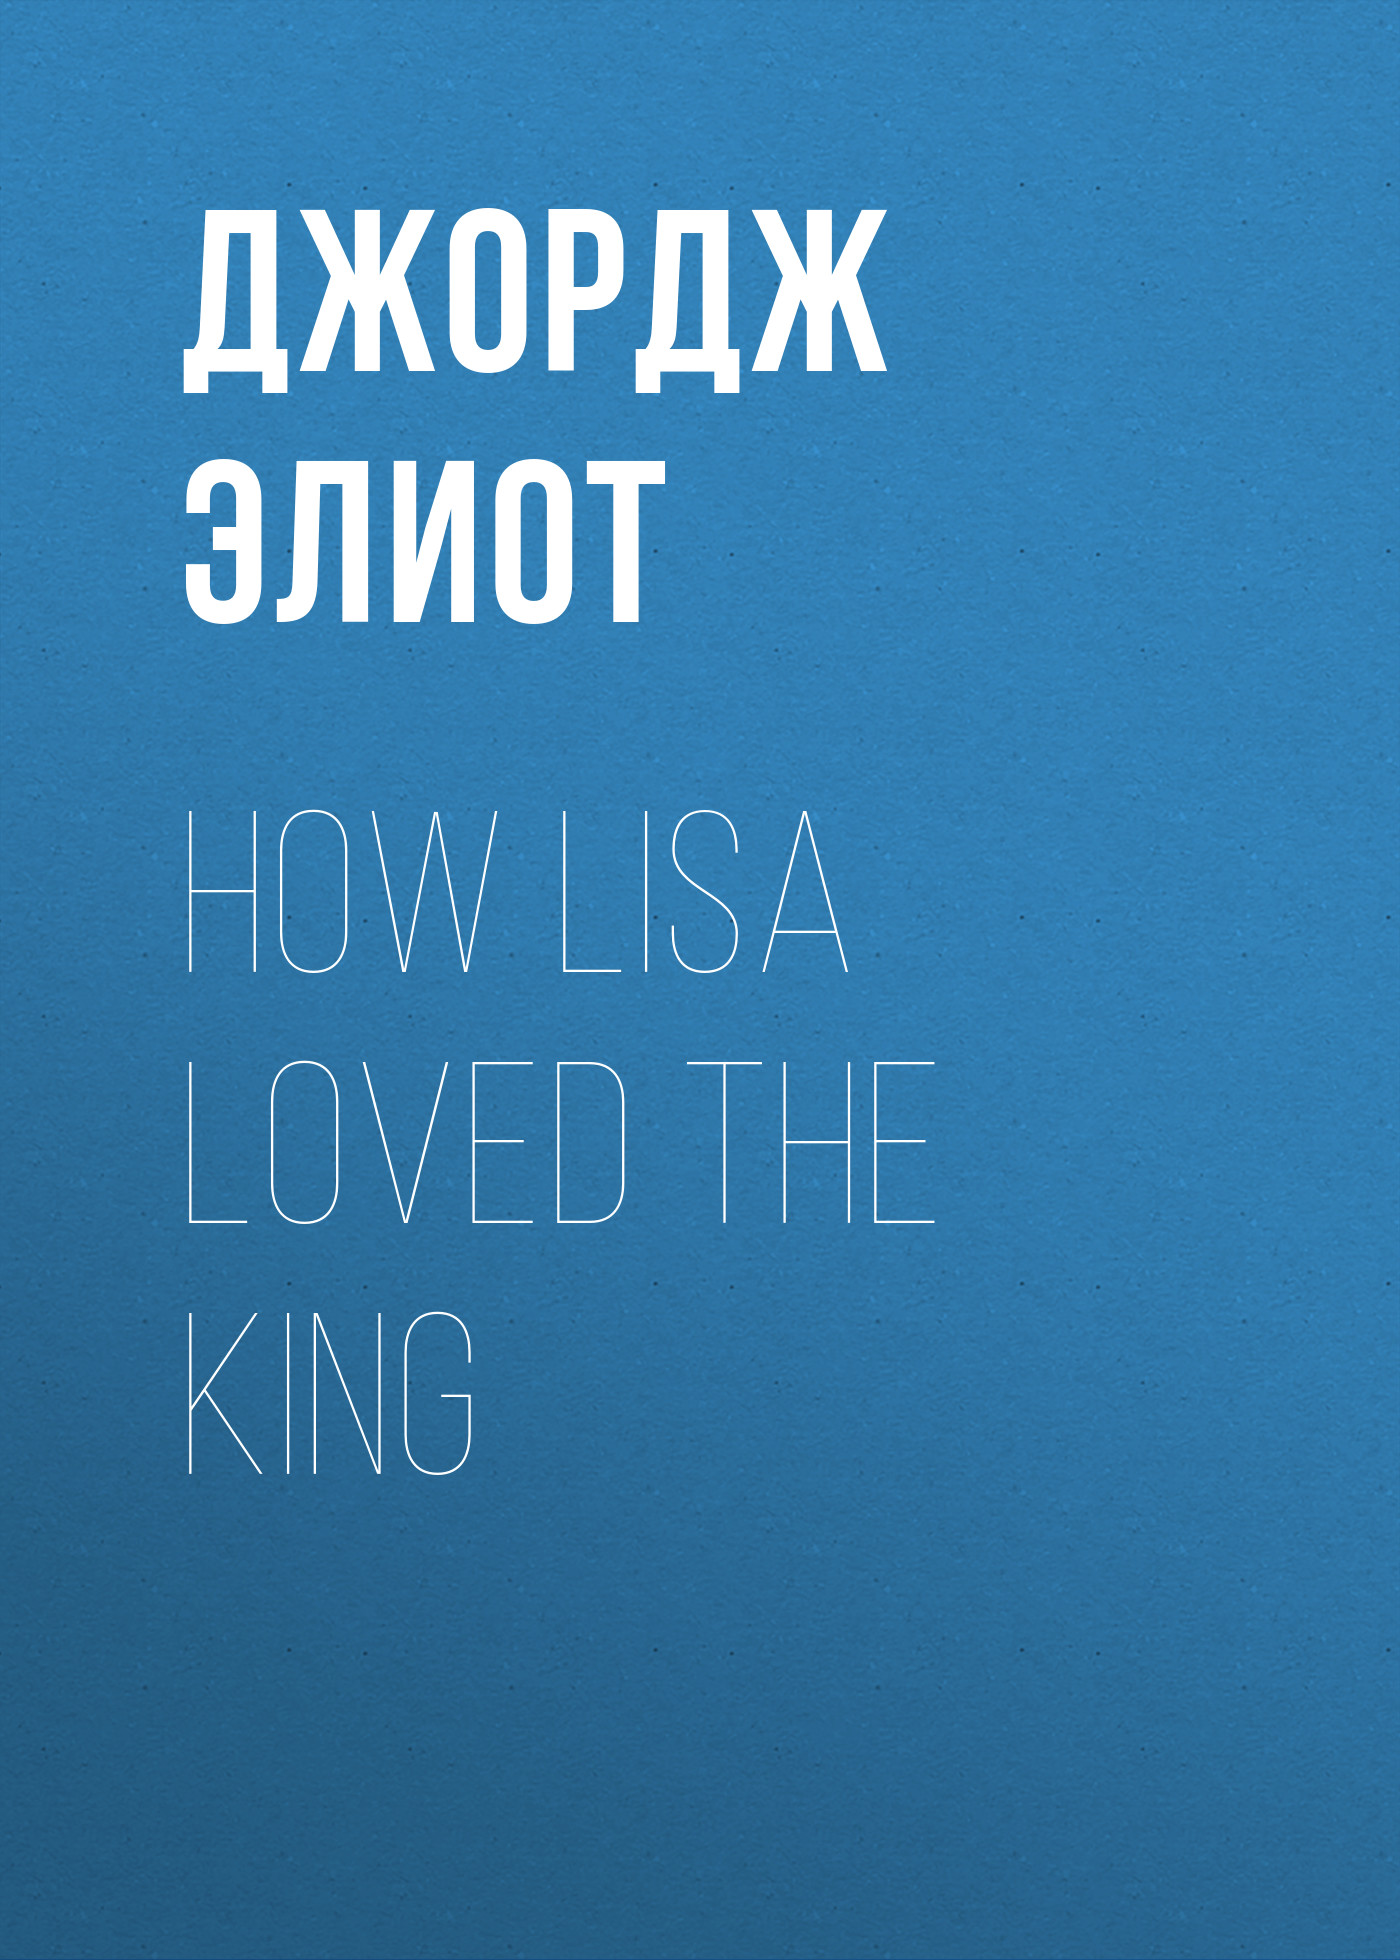 Джордж Элиот How Lisa Loved the King джордж элиот daniel deronda